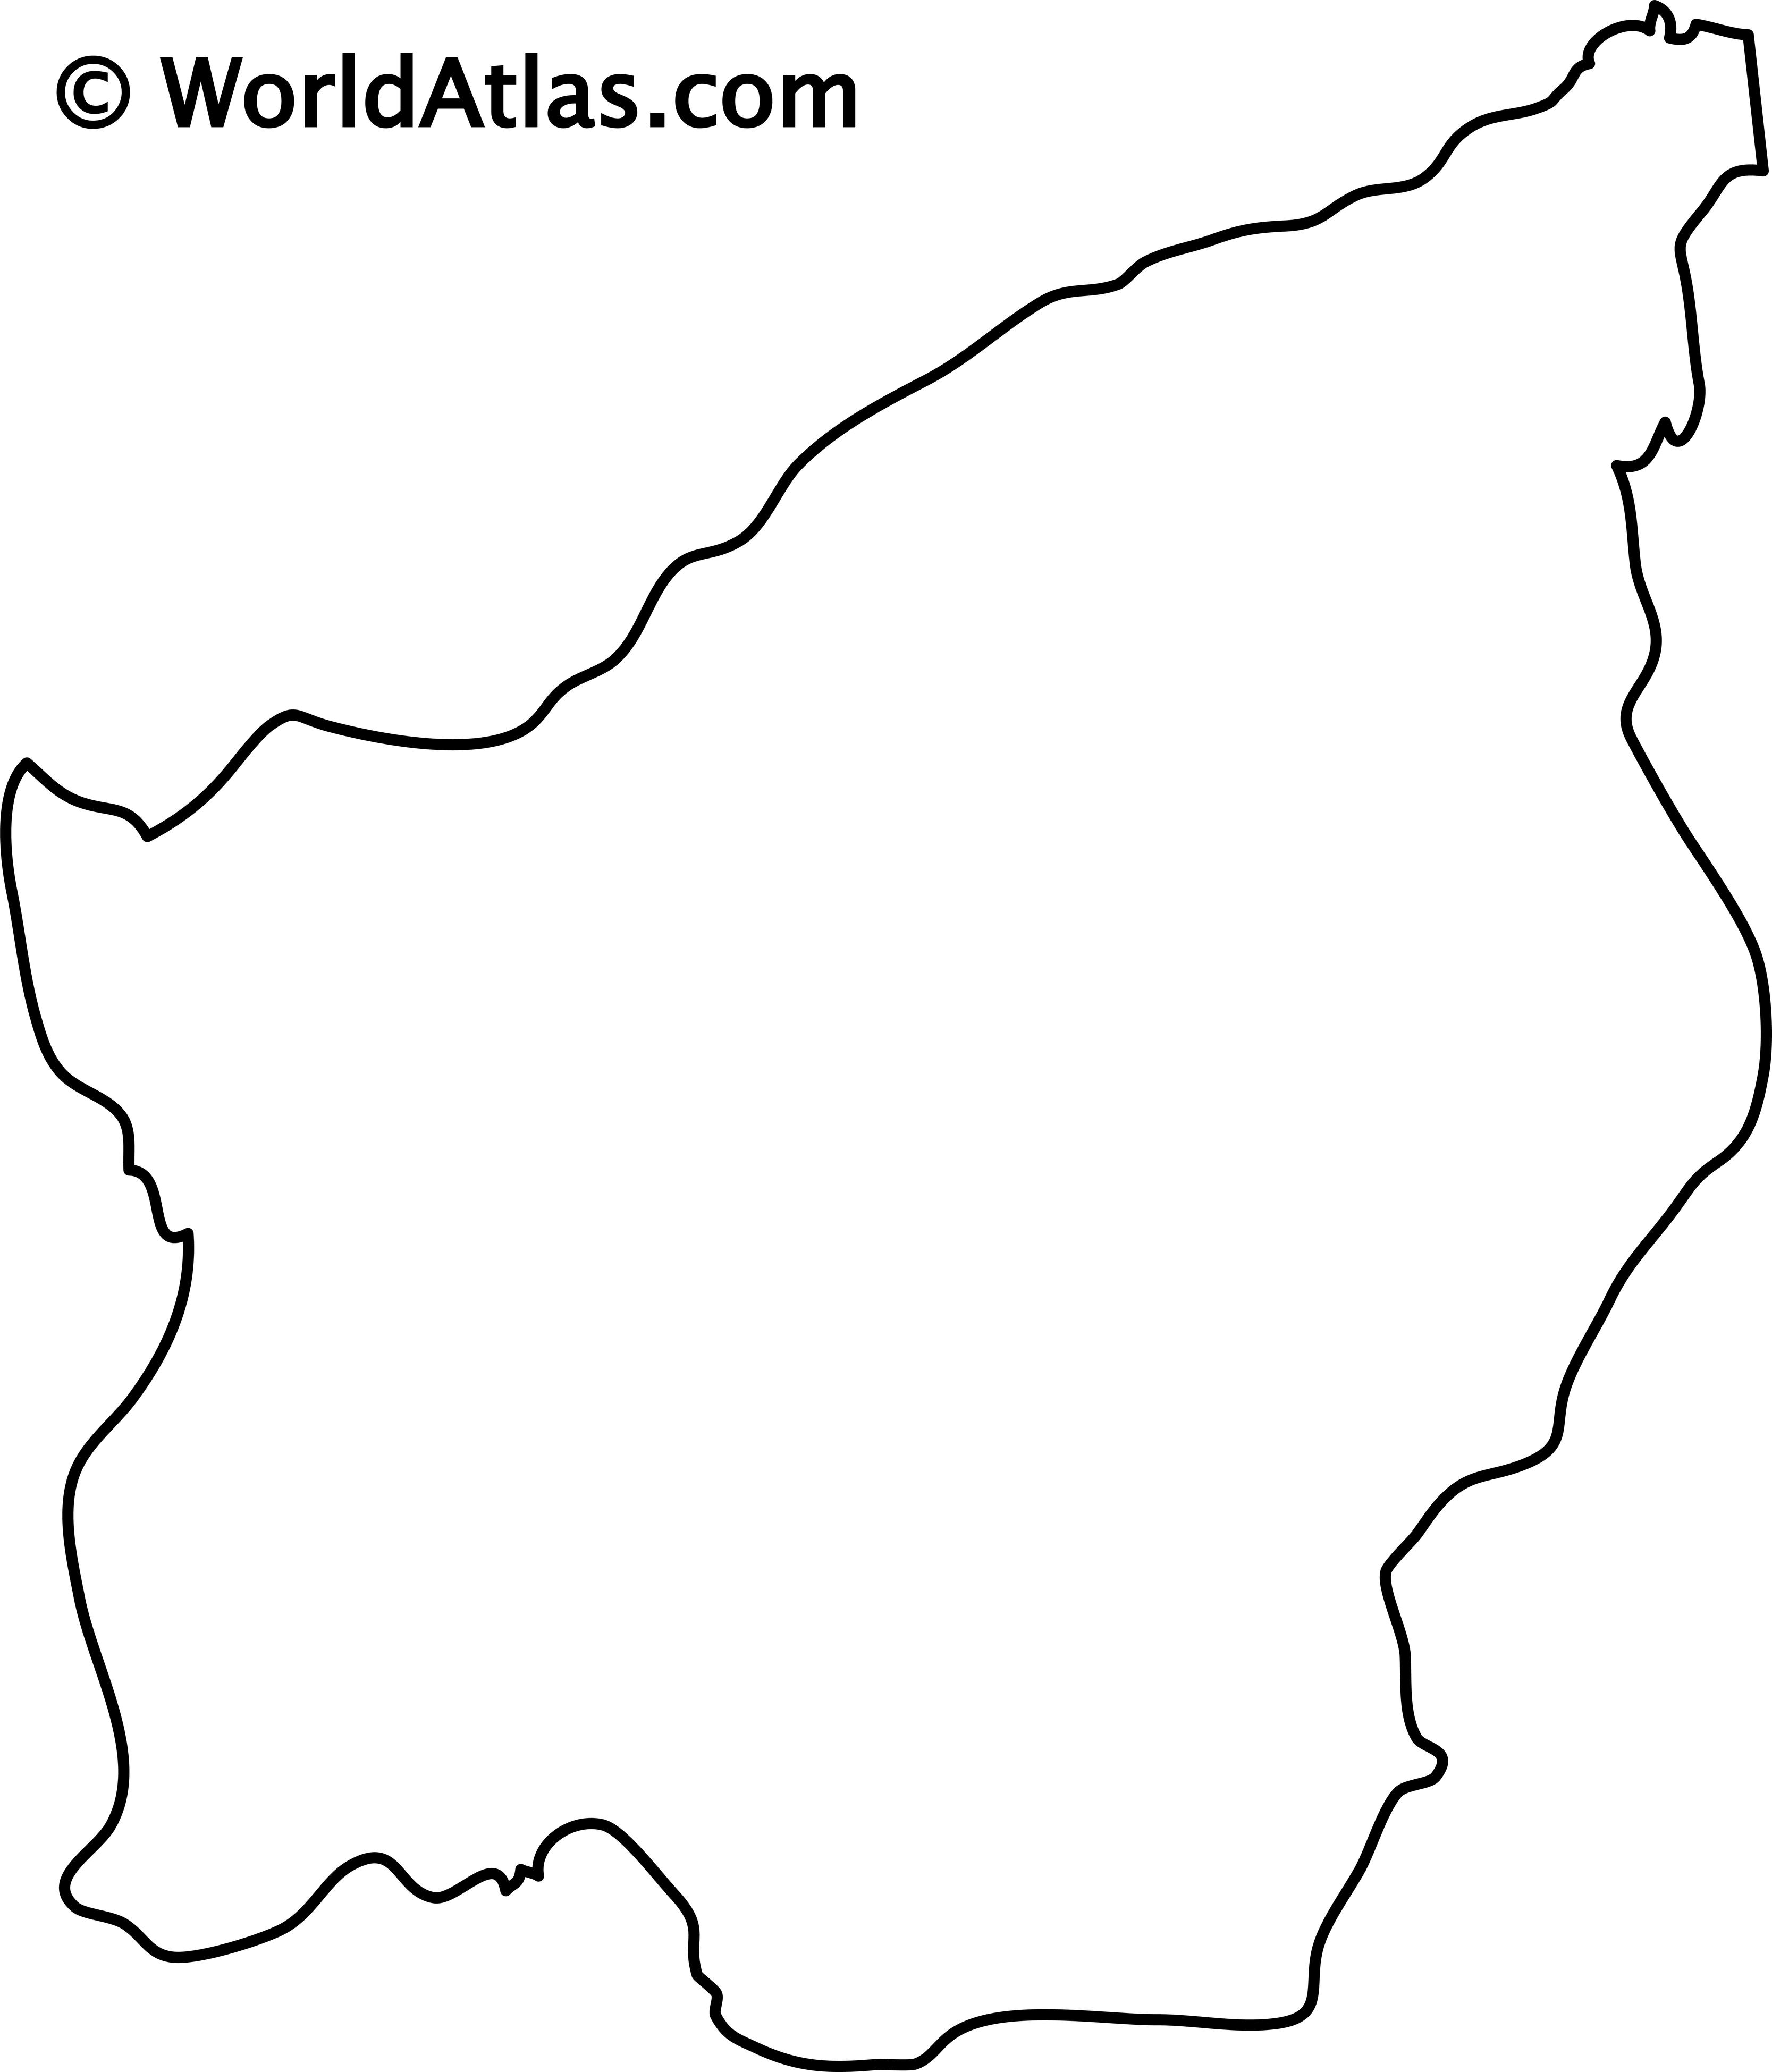 Blank Outline Map of San Marino